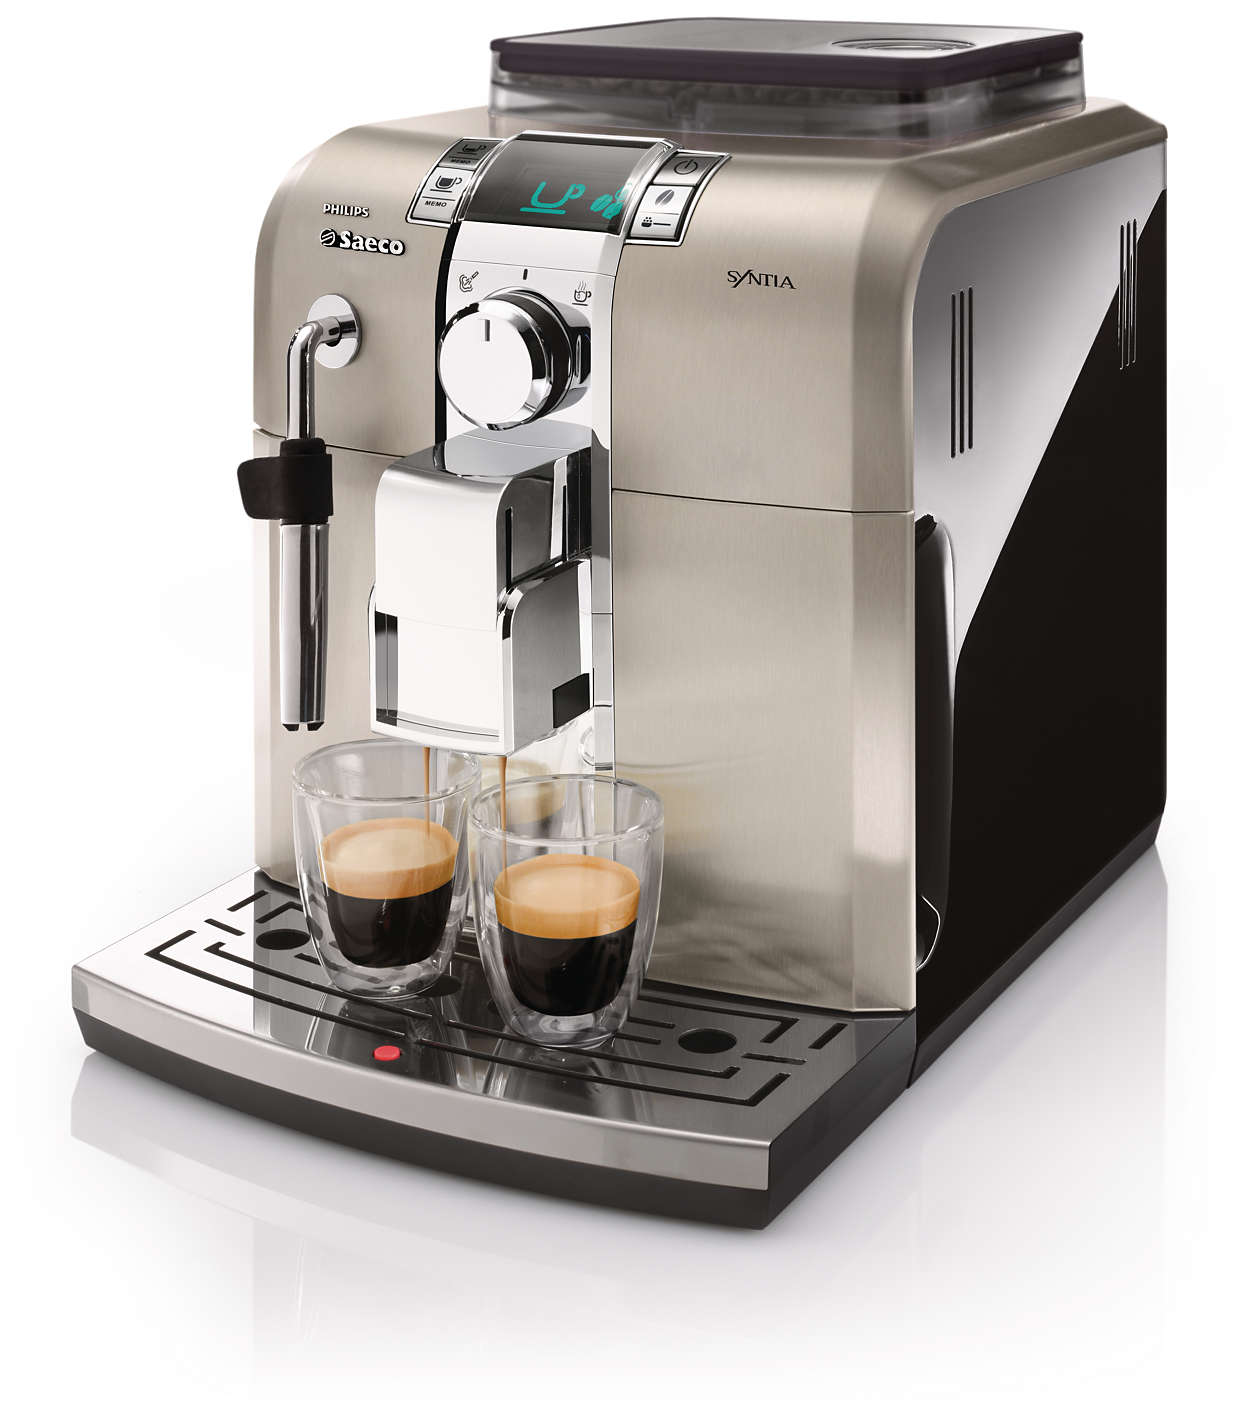 Saeco Synthia Bean to Cup espresso and coffee machine